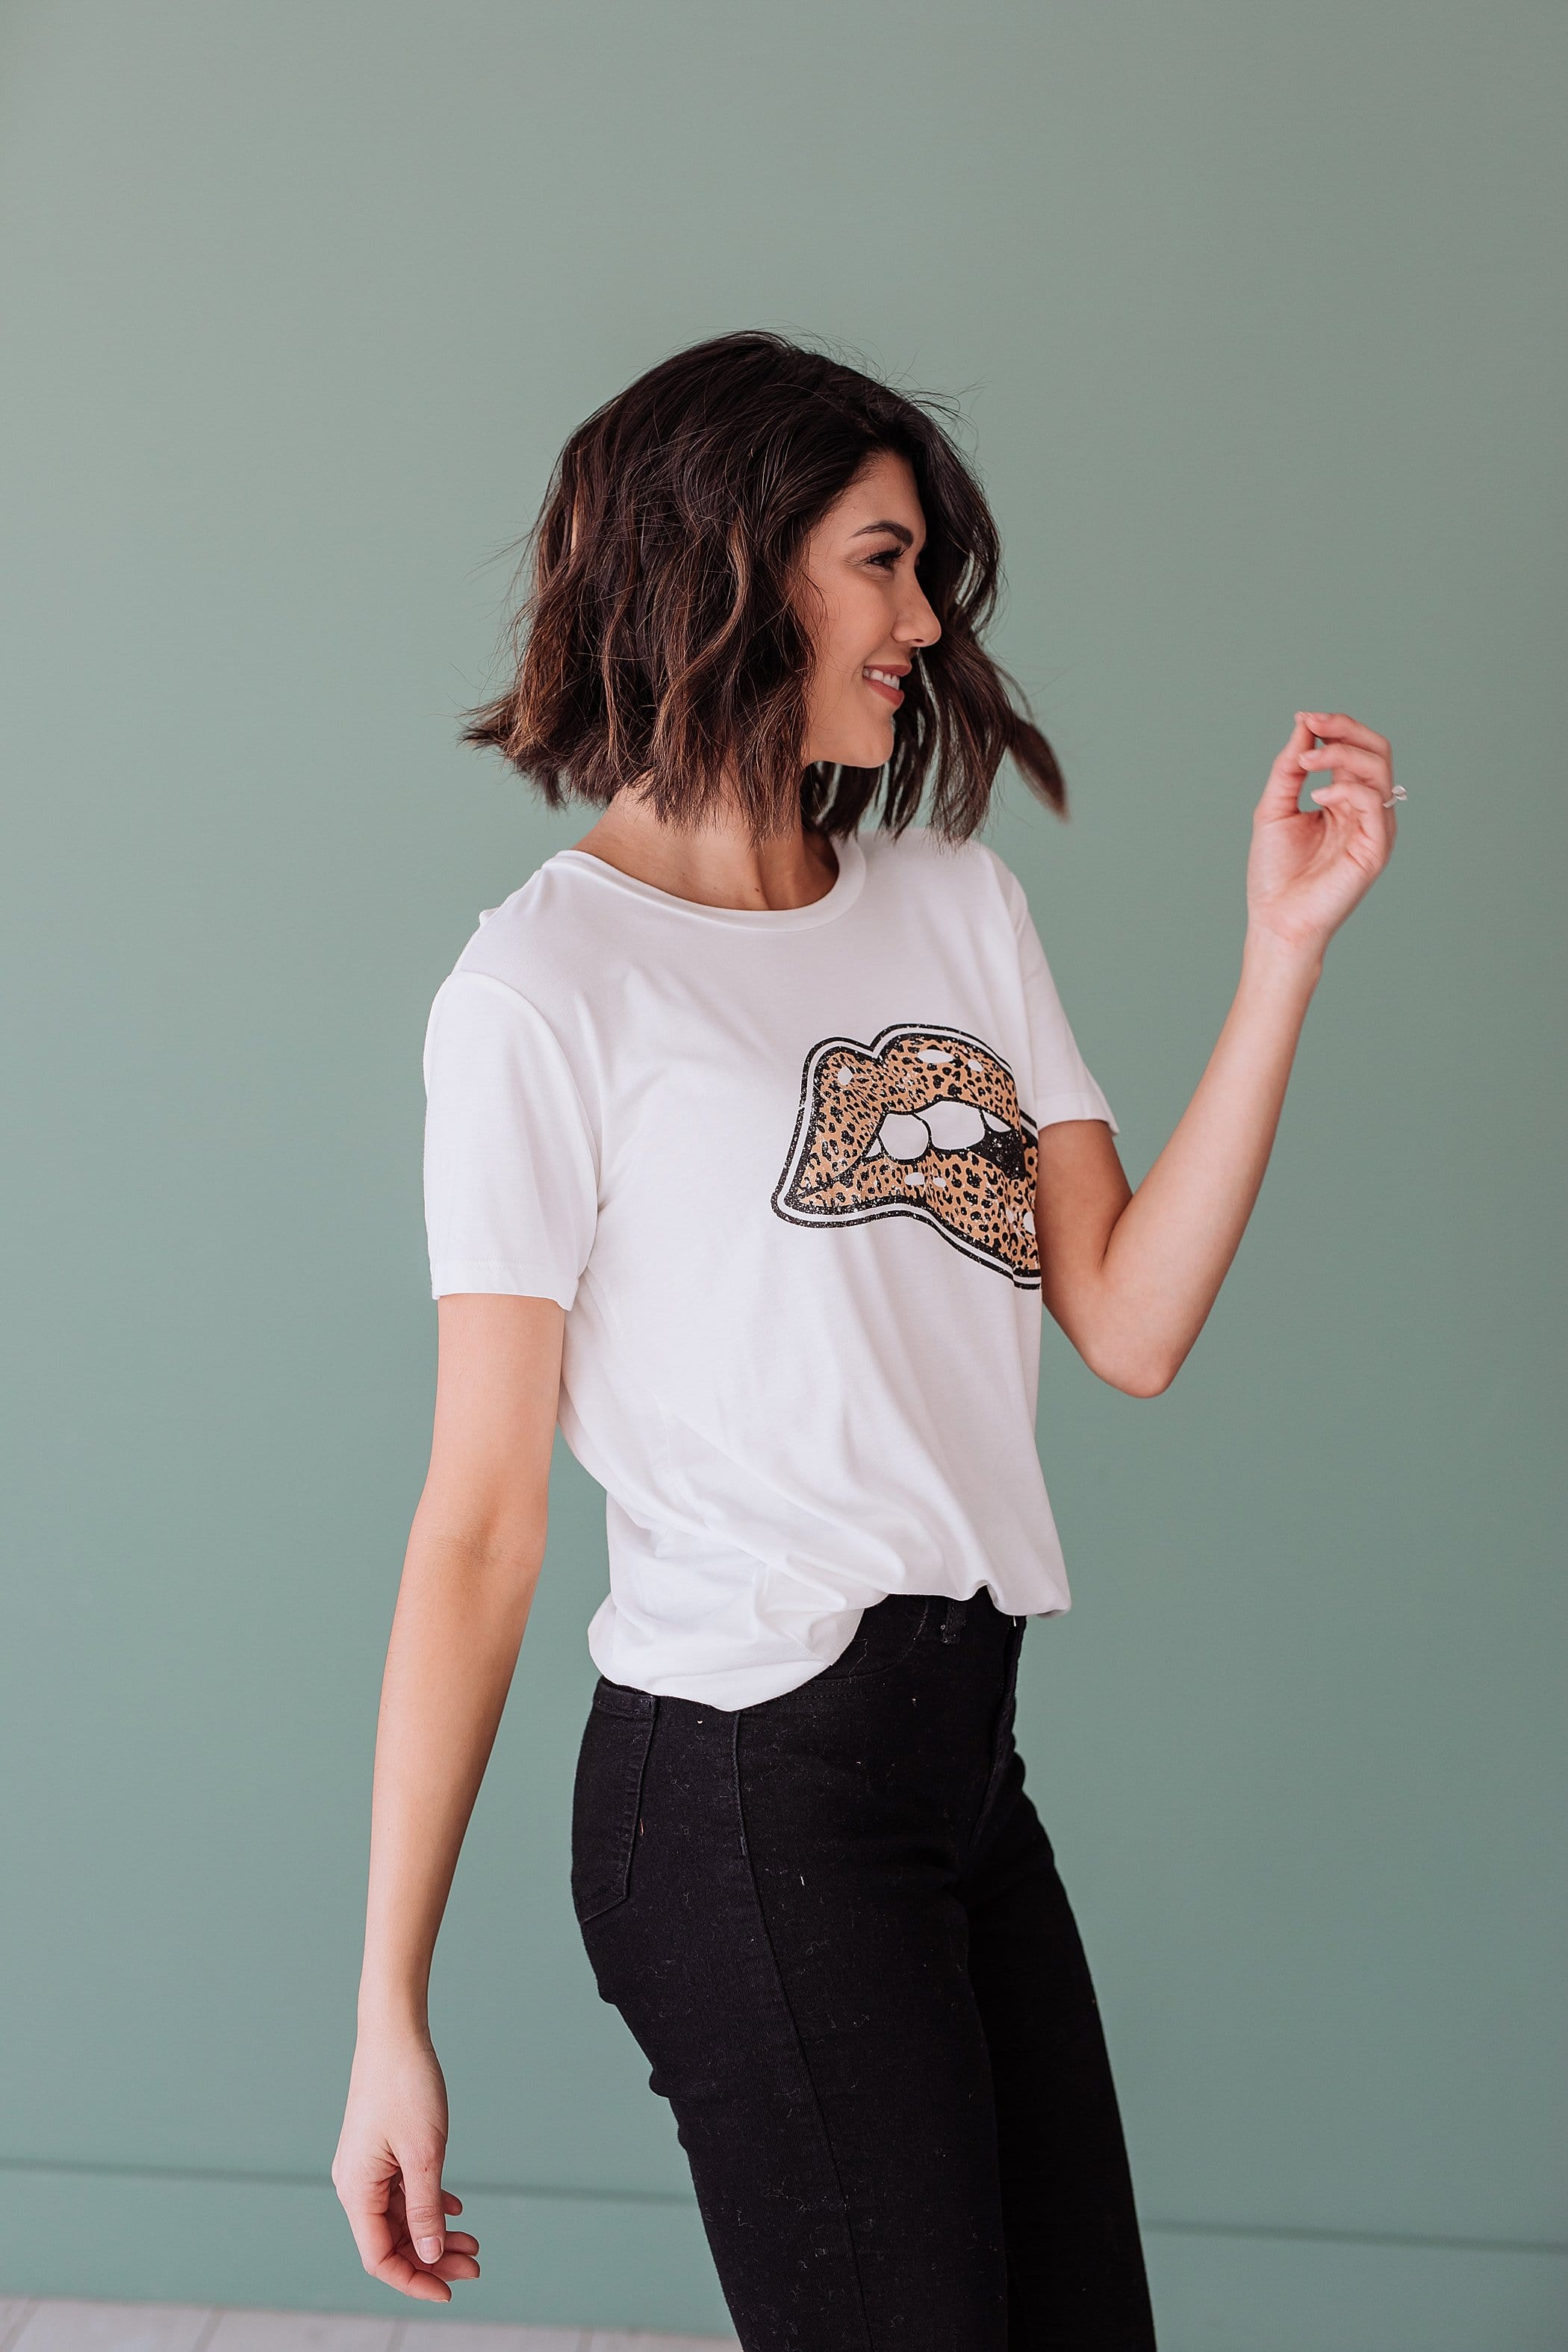 The Leopard Lips Graphic Top in Black, Grey and White